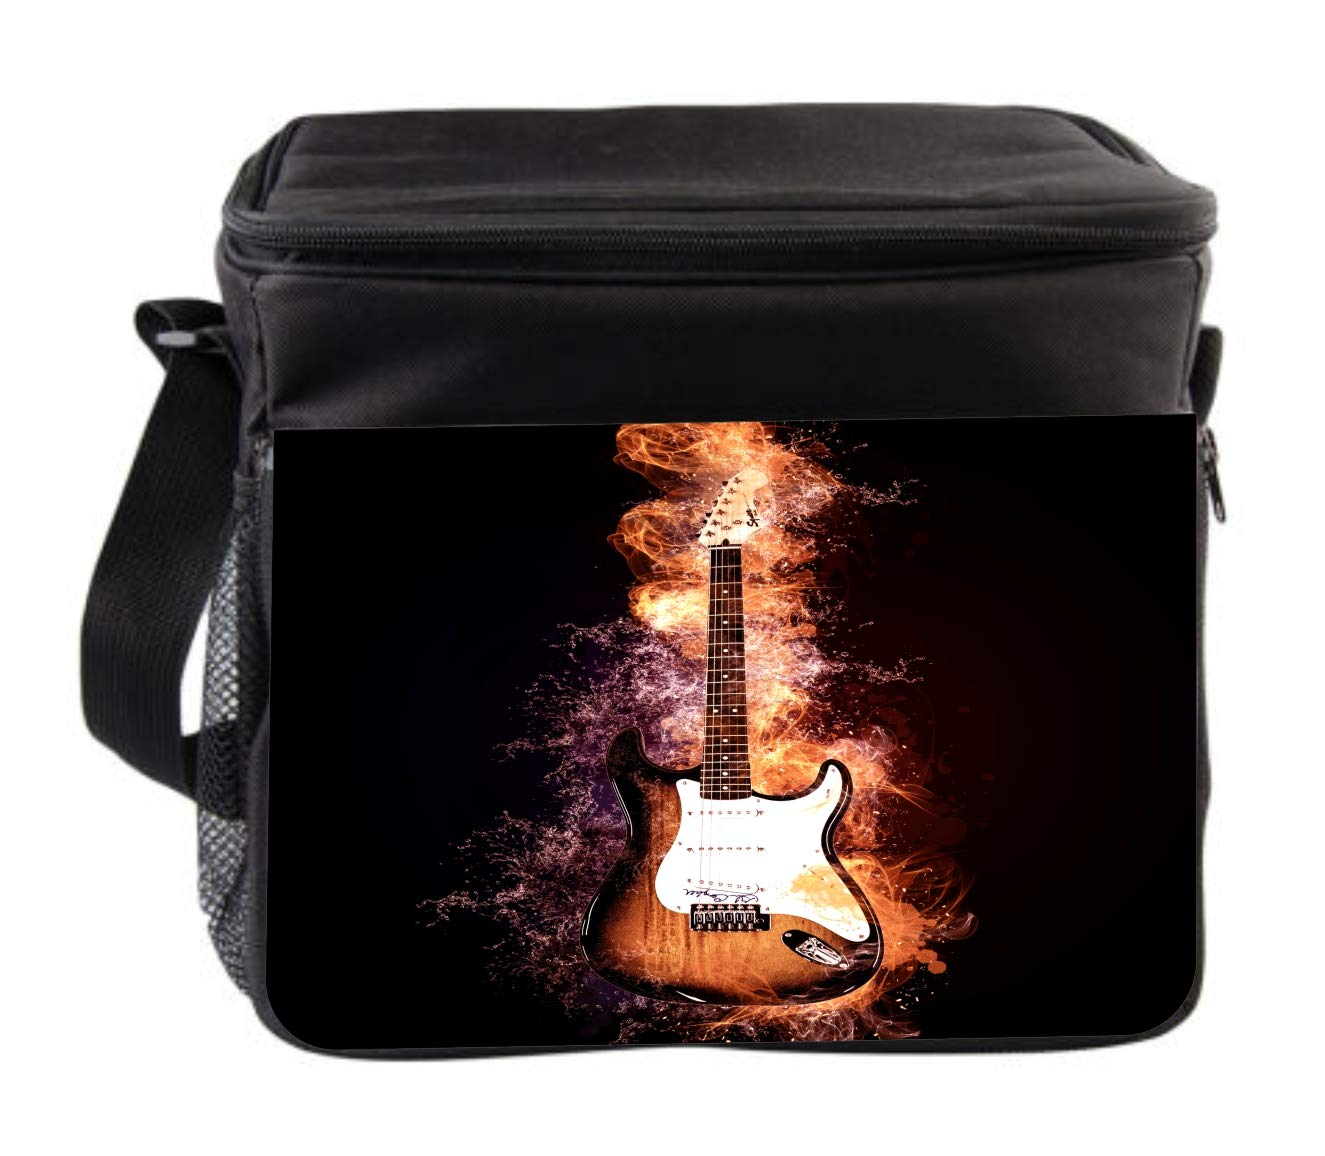 Rosie Parker Inc. Music Electric Guitar Cross Body Thermal Cooler Bag for Travel by Rosie Parker Inc.